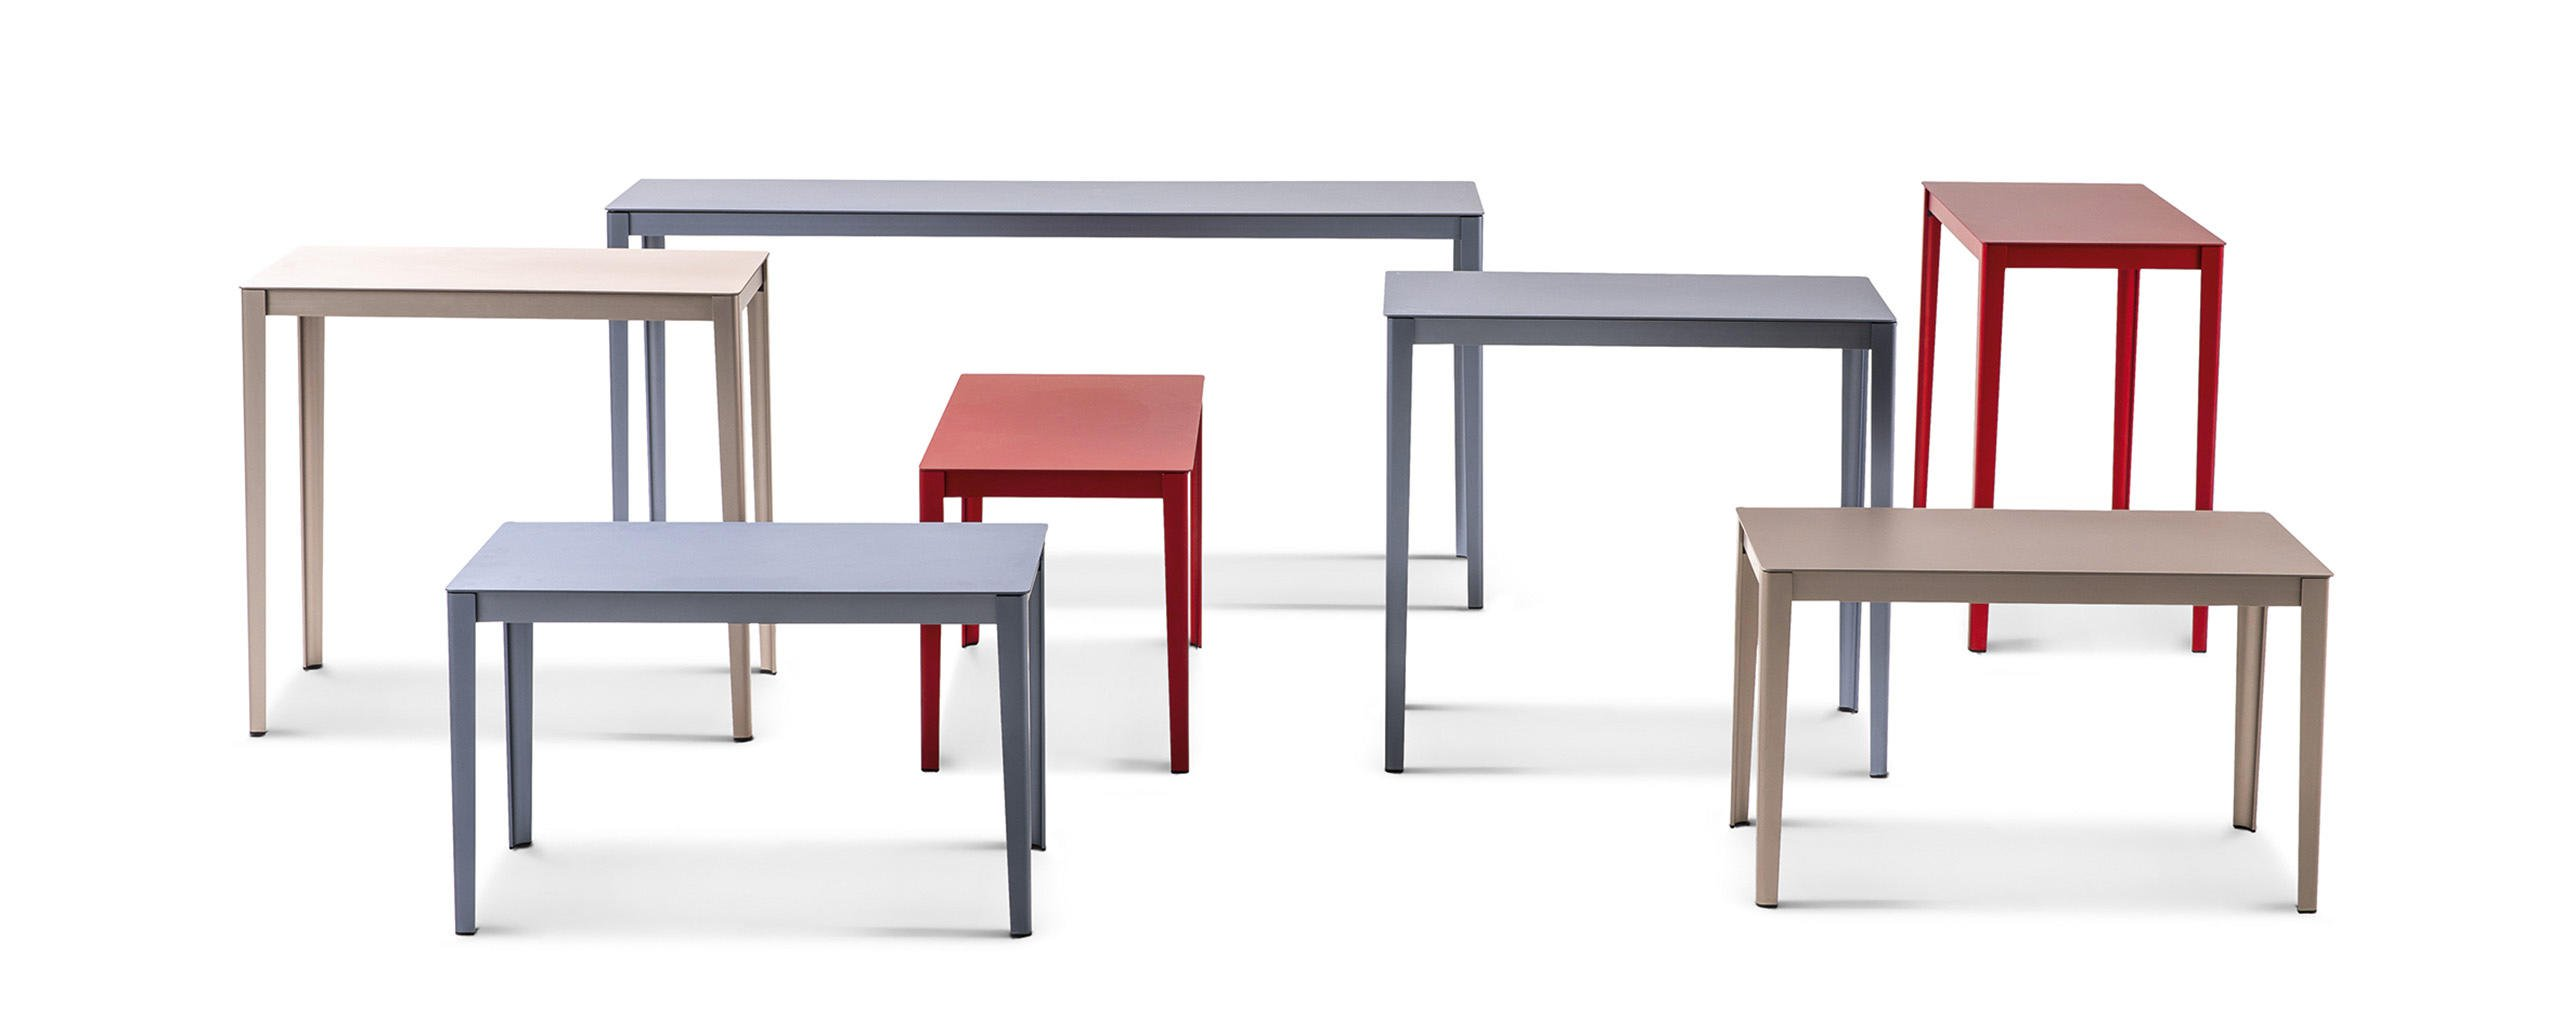 4_cassina_cotone_coffee_table_cotone_low_table_ronan_erwan_bouroullec